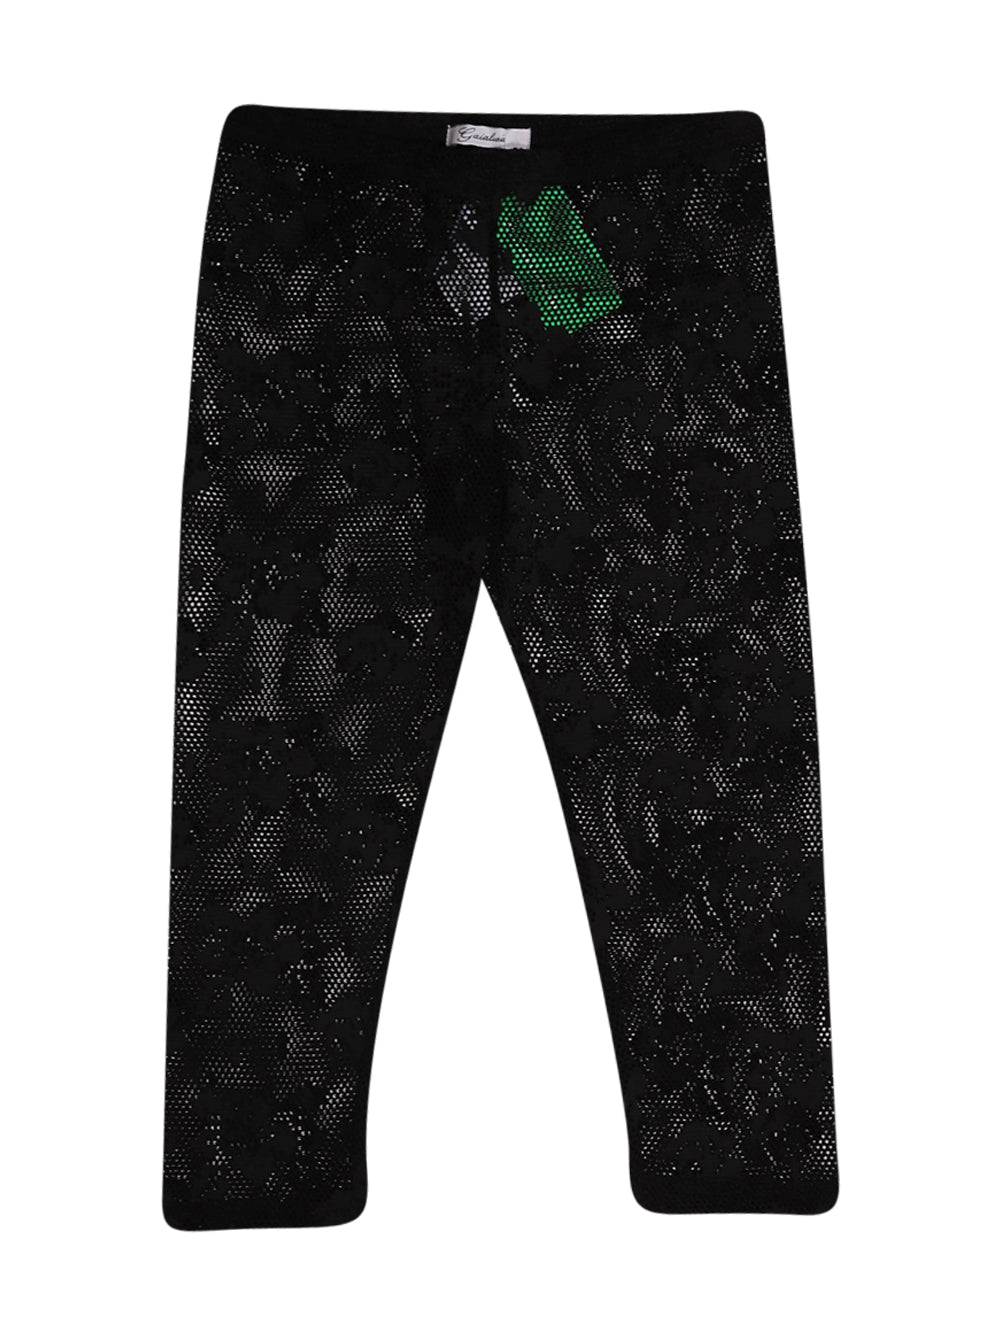 Front photo of Preloved Gaialuna Black Woman's trousers - size 8/S